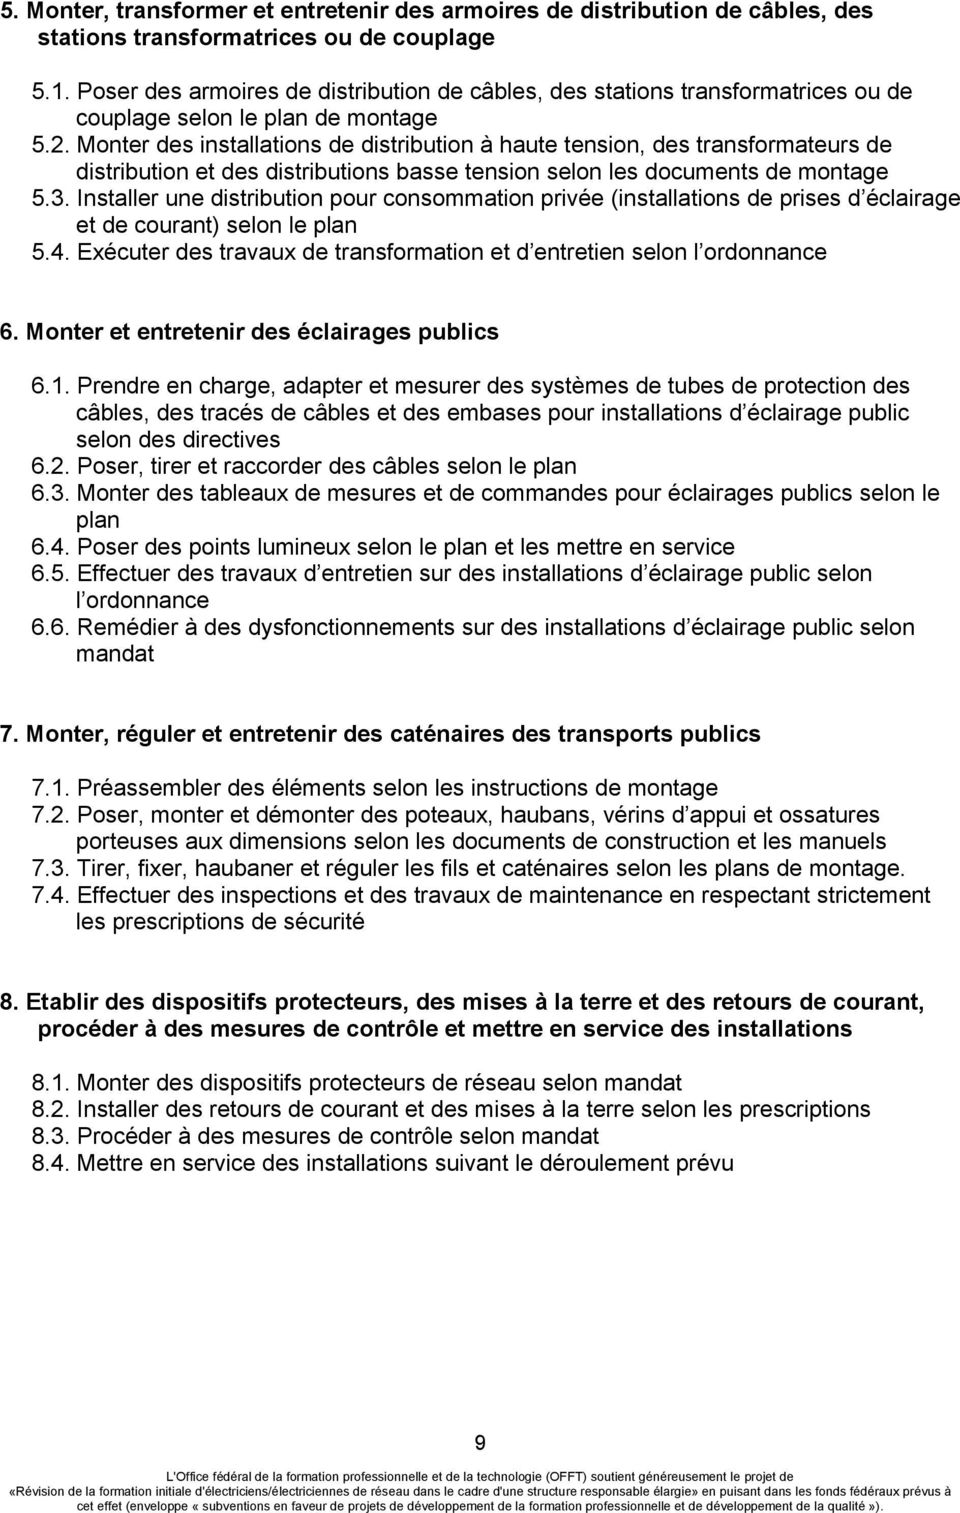 Monter des installations de distribution à haute tension, des transformateurs de distribution et des distributions basse tension selon les documents de montage 5.3.